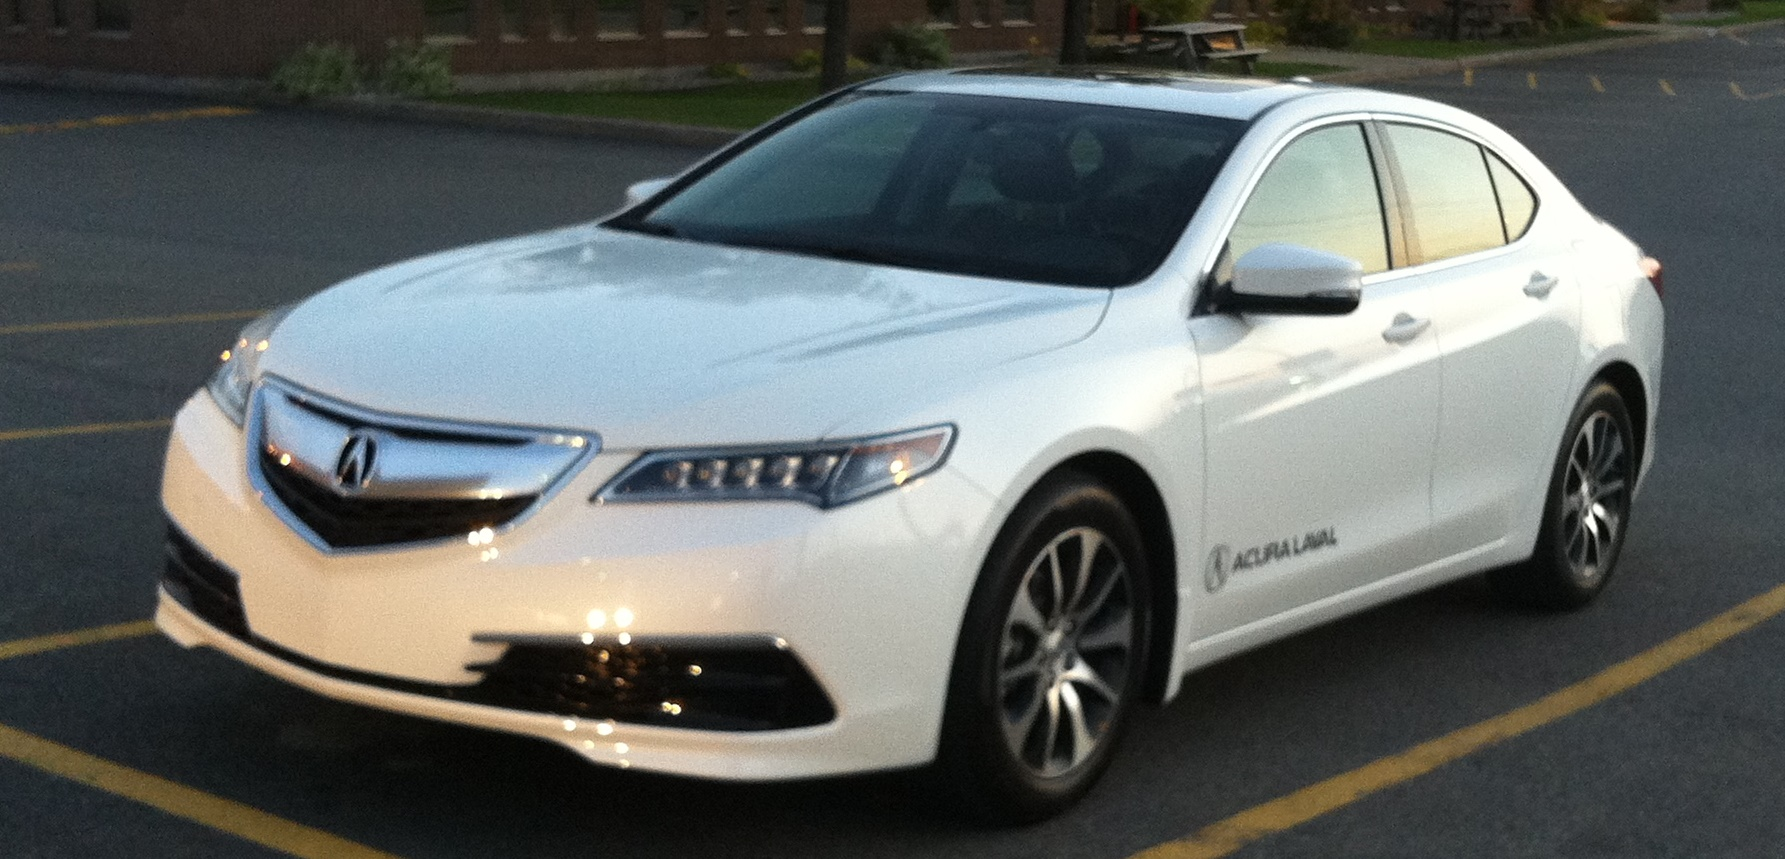 acura tlx 2015 white images galleries with a bite. Black Bedroom Furniture Sets. Home Design Ideas